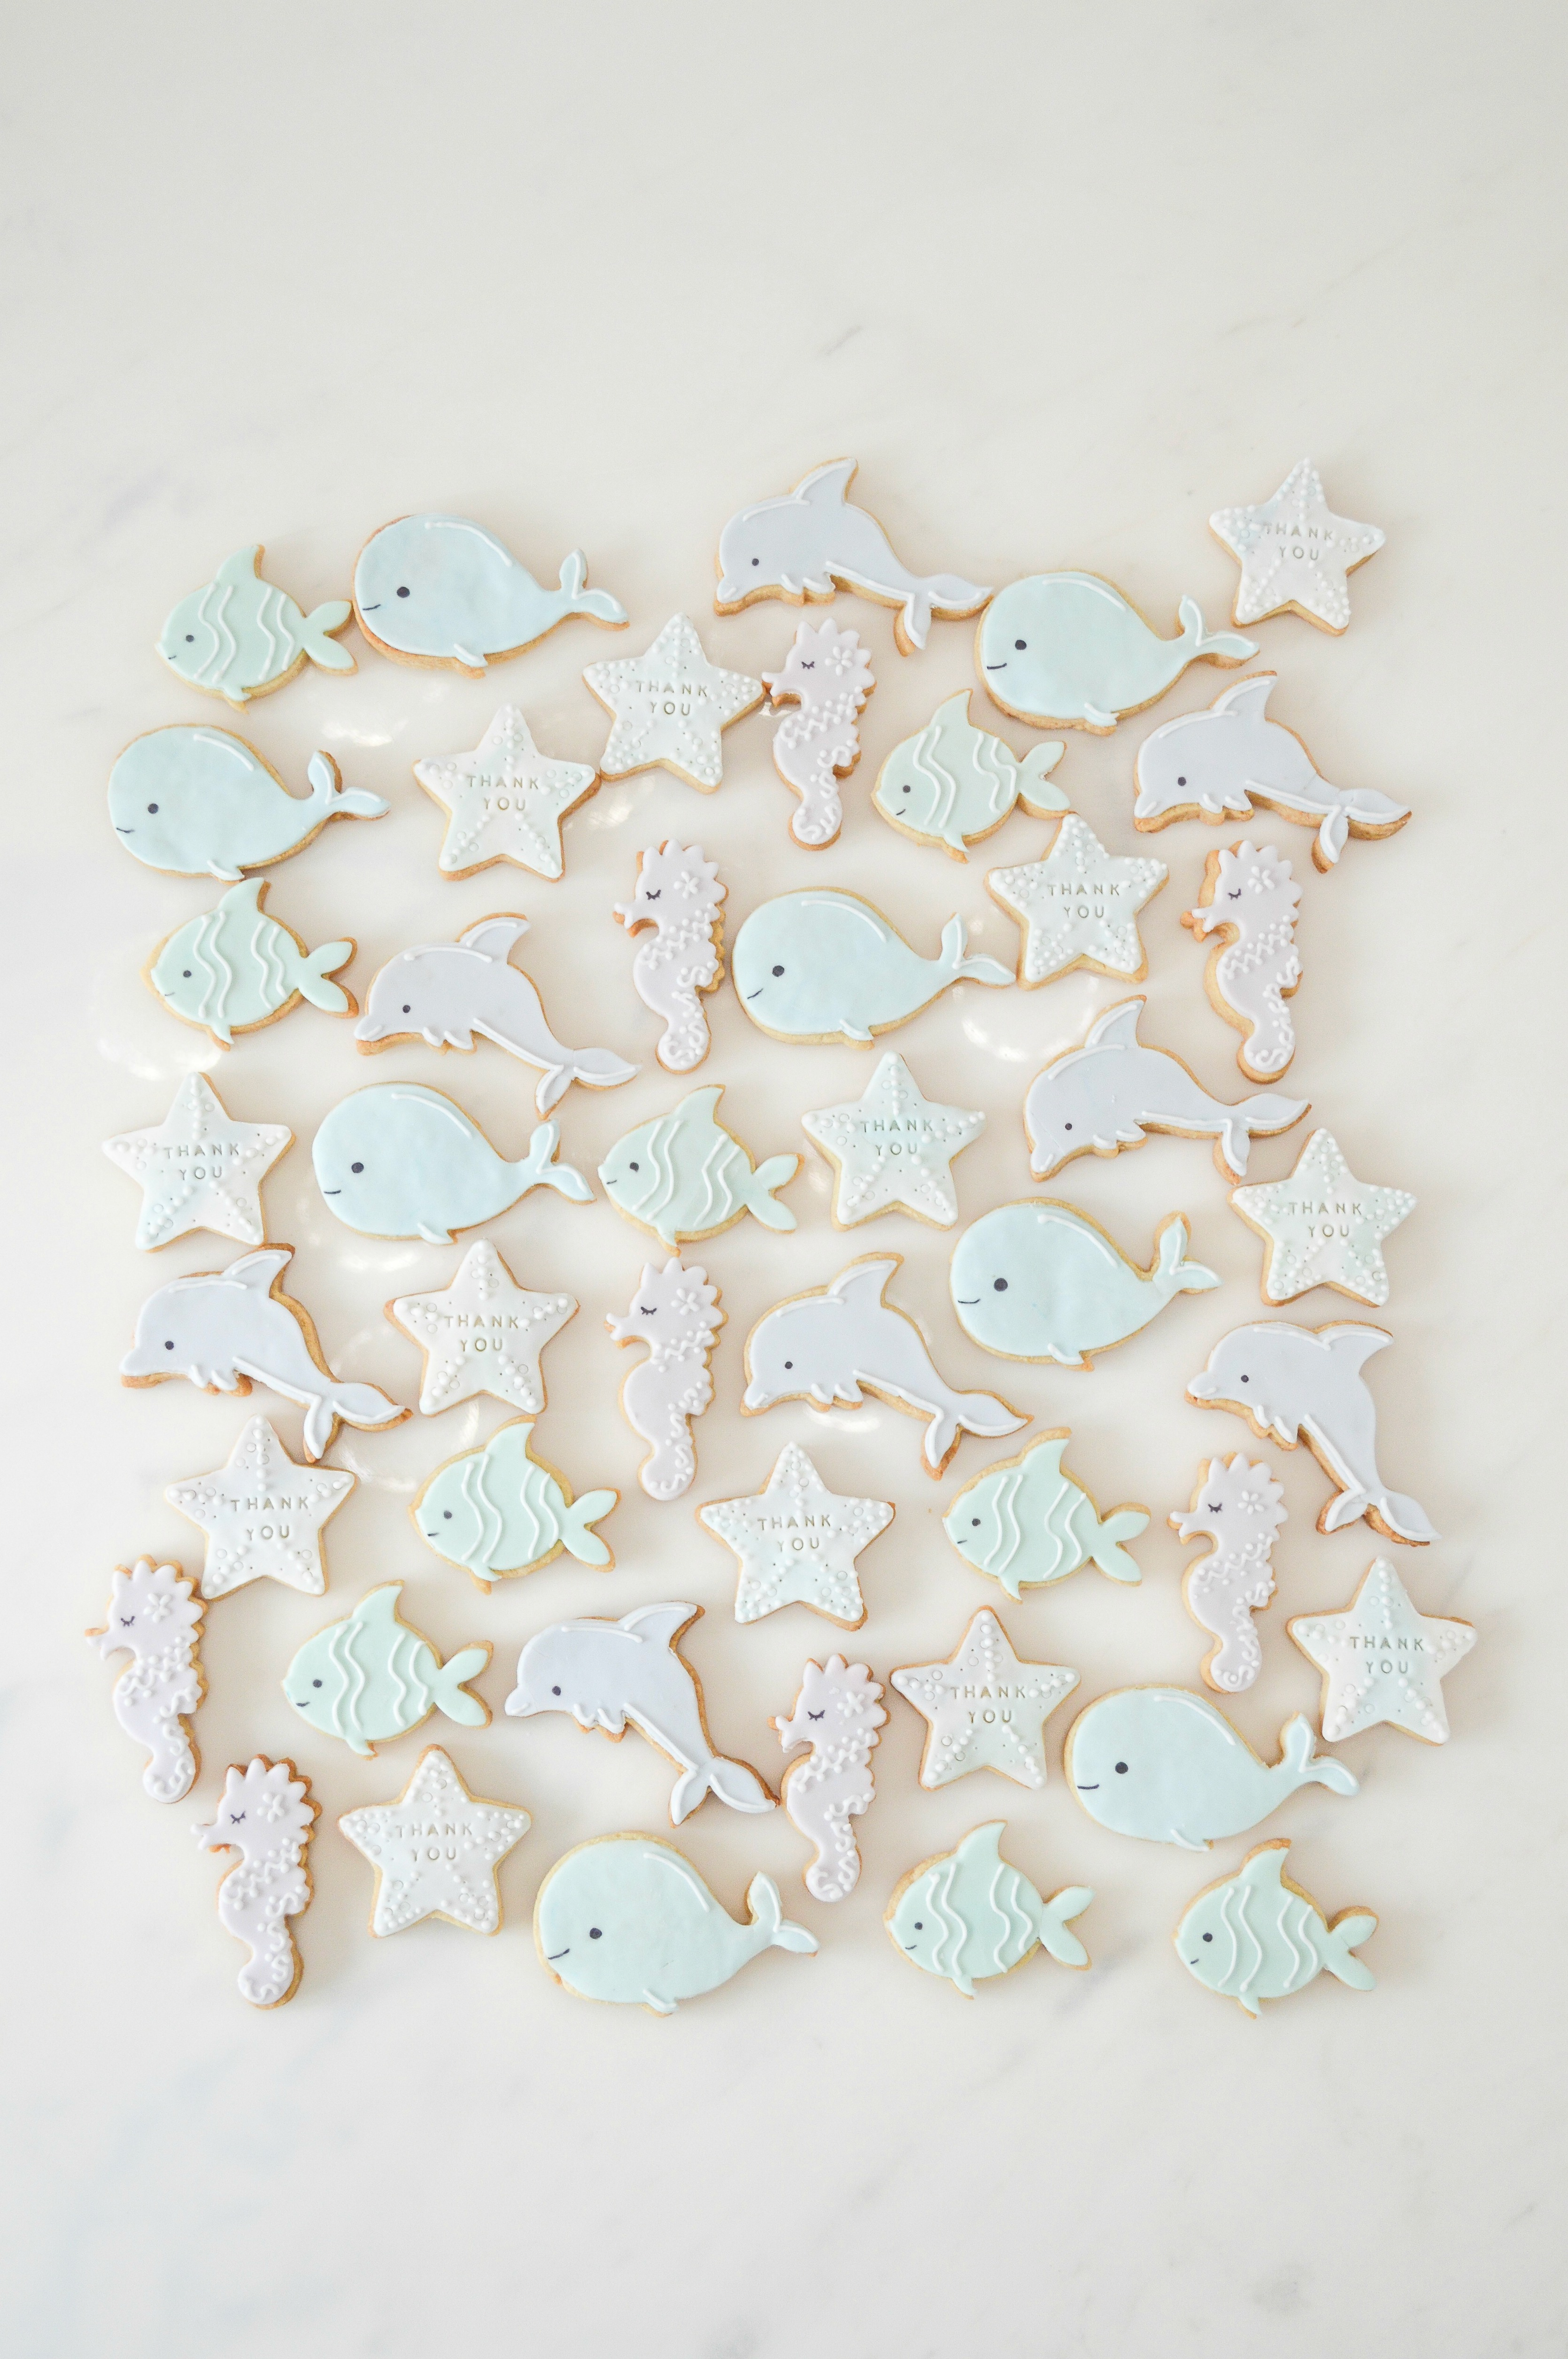 Under the sea themed birthday party cookies mermaid stairfish seahorse whale fish dolphin Cherie Kelly cakes